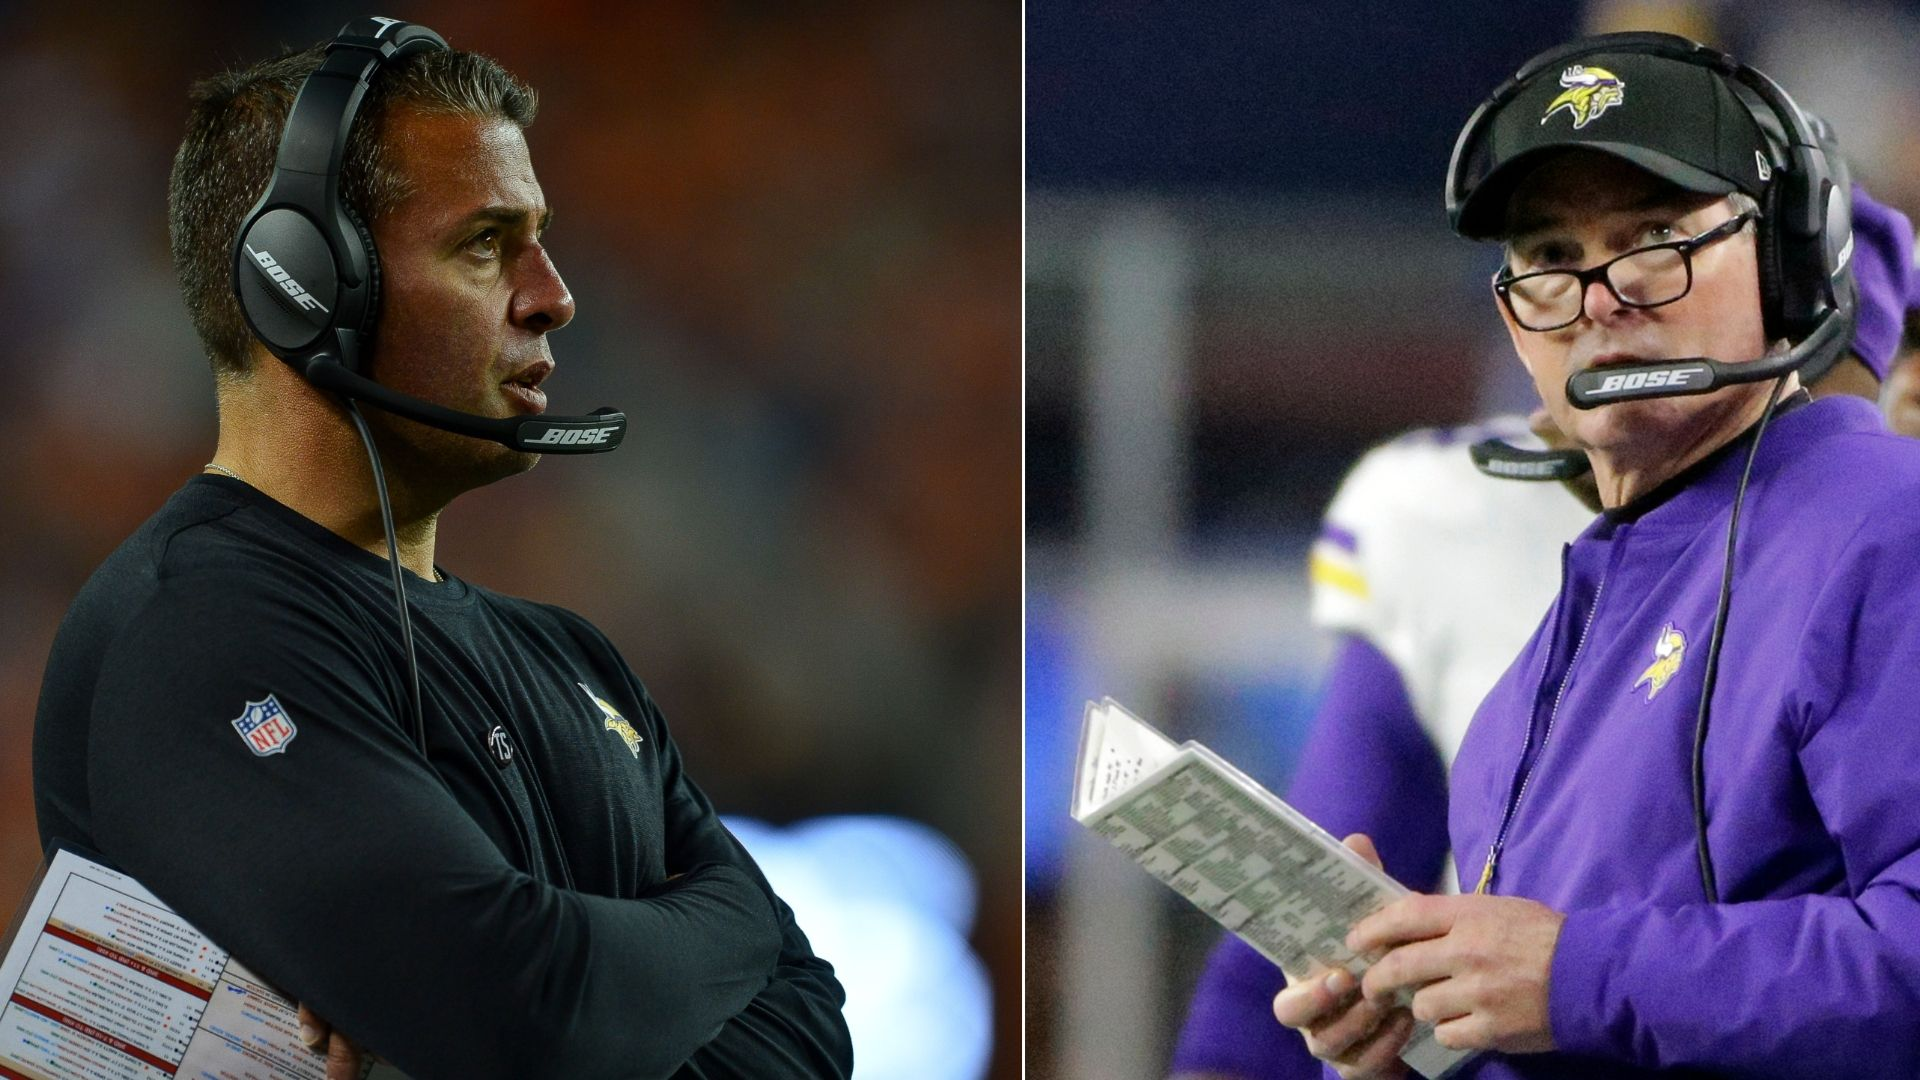 McFarland: There's a disconnect between Zimmer, DeFilippo